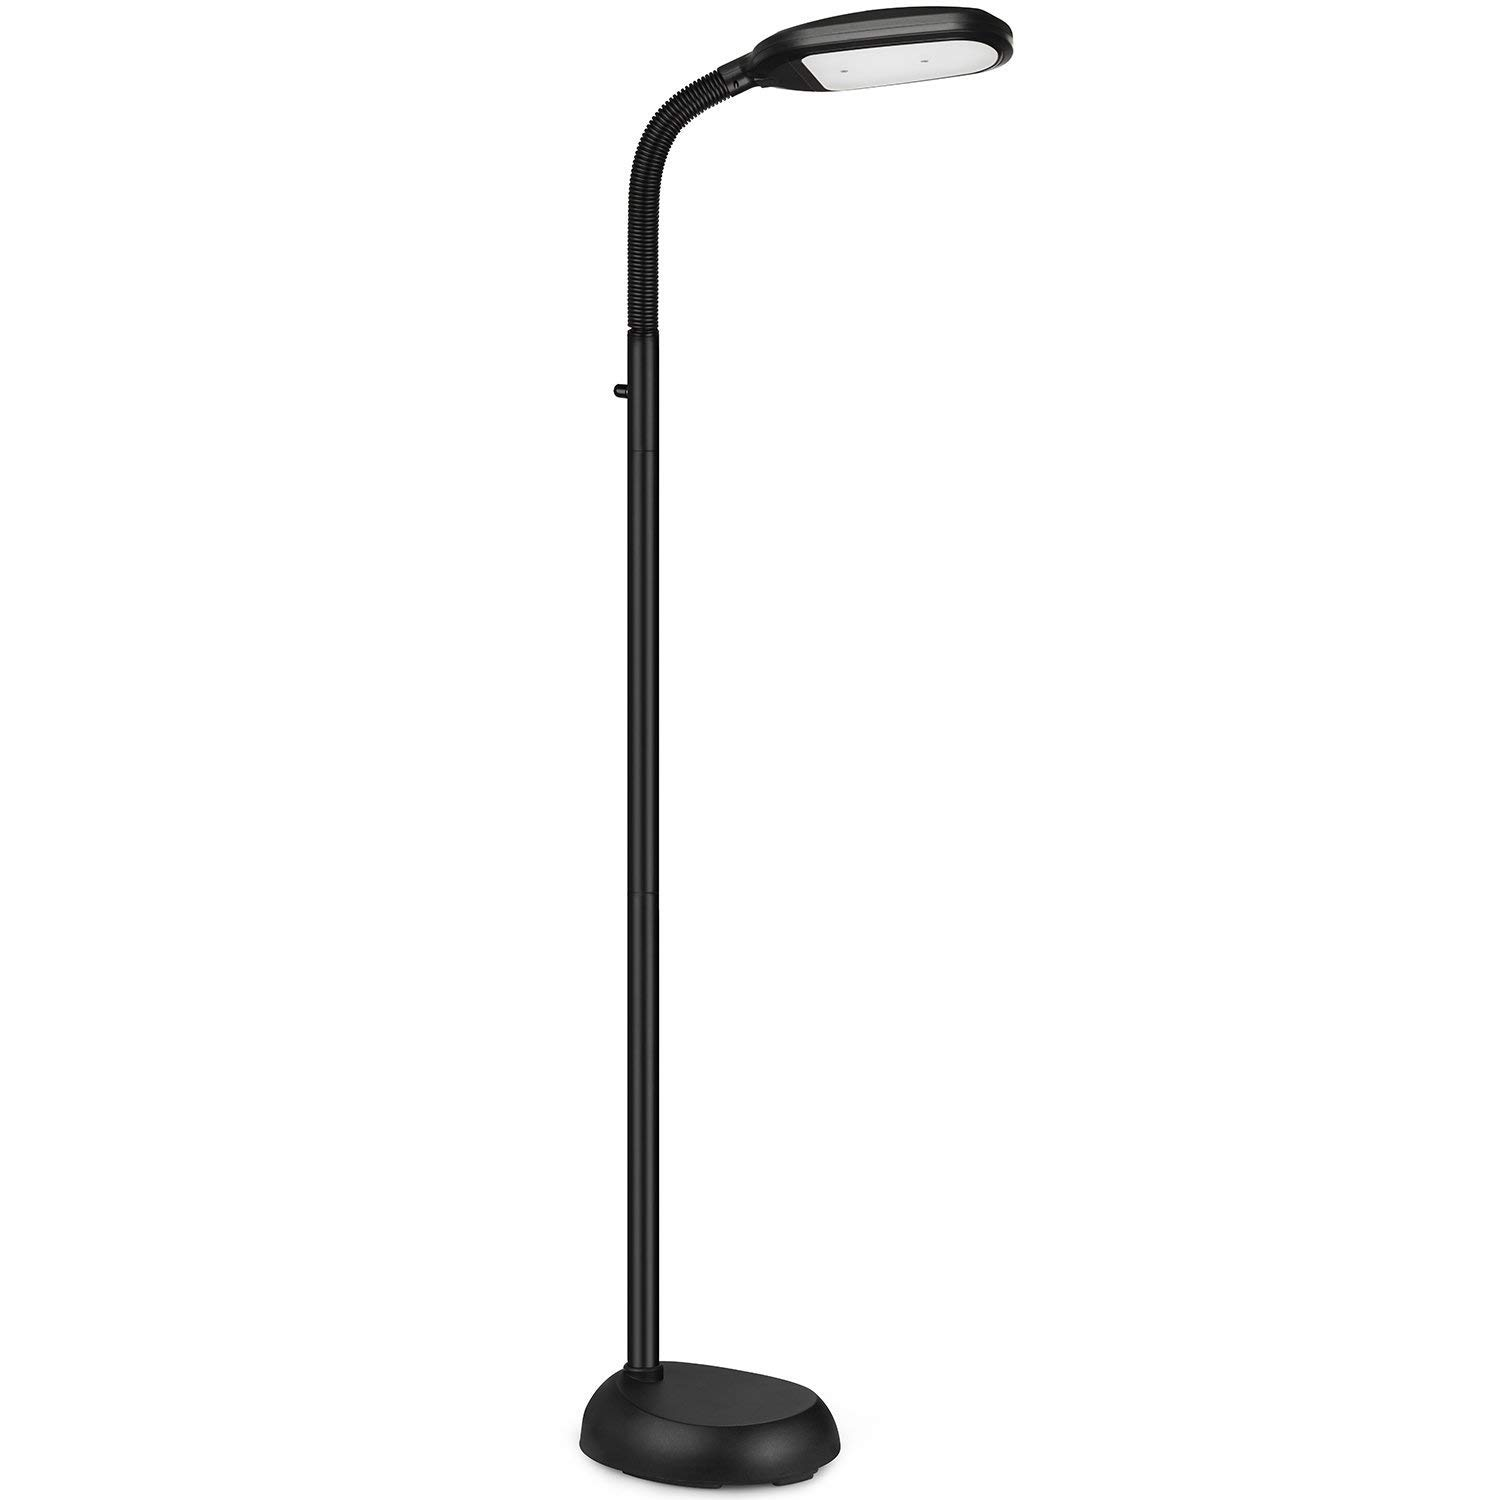 LED Floor Lamp - Dimmable Natural Daylight Sunlight LED Reading and Craft Standing Light Full Spectrum- Adjustable Gooseneck in Any Direction for Living Room Bedroom Office - Black